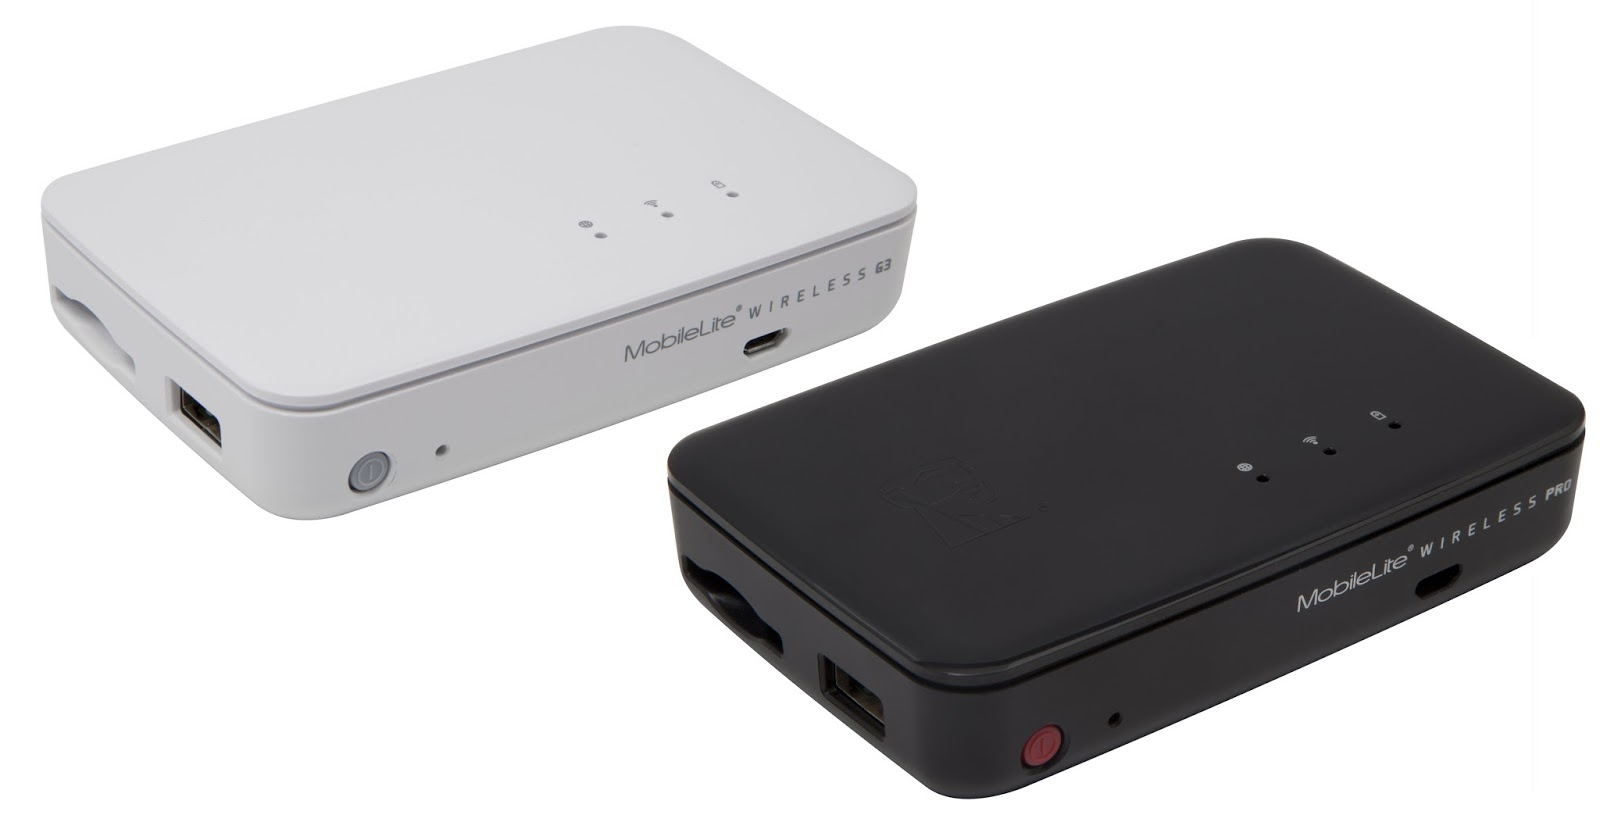 Kingston MobileLite Wireless G3 and MobileLite Wireless Pro